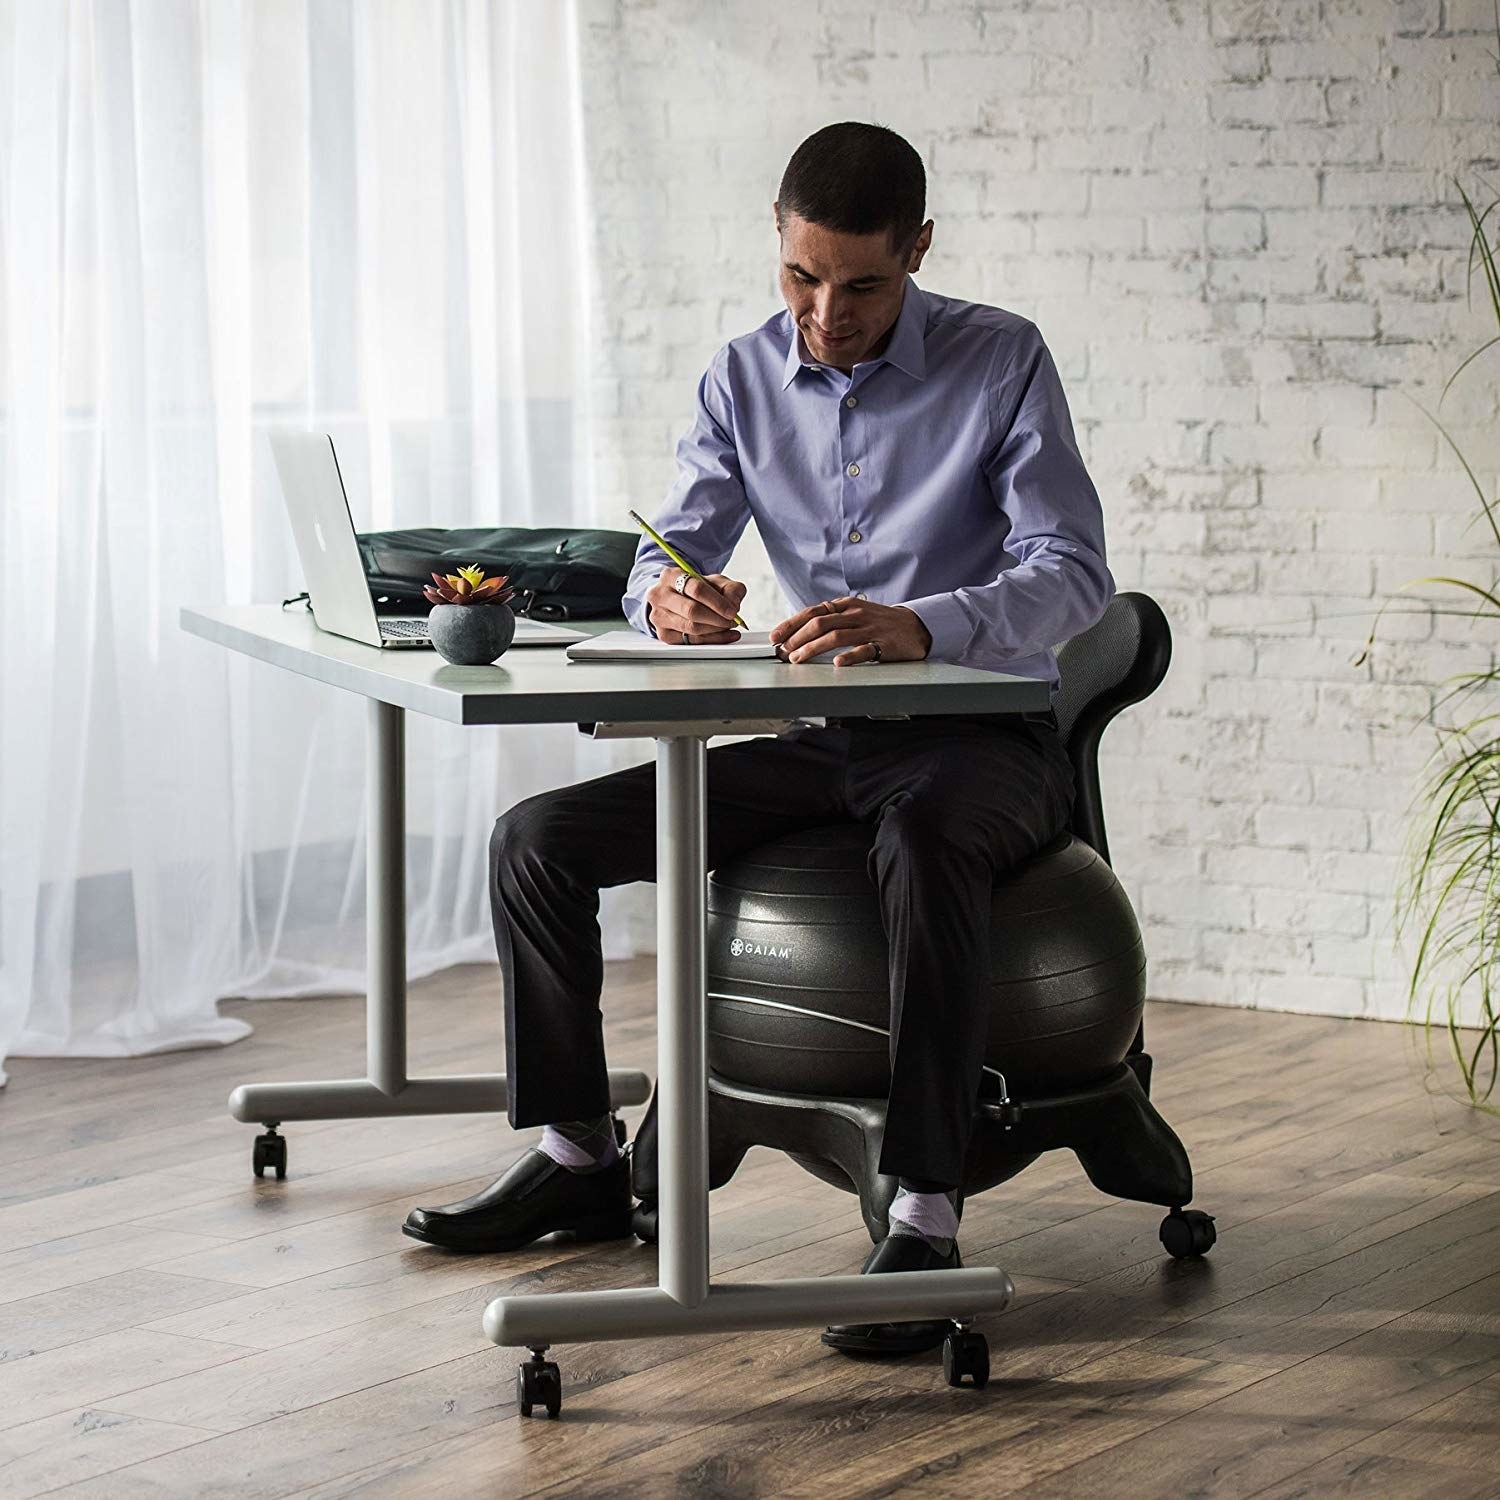 A person sitting on the chair and working at their desk.